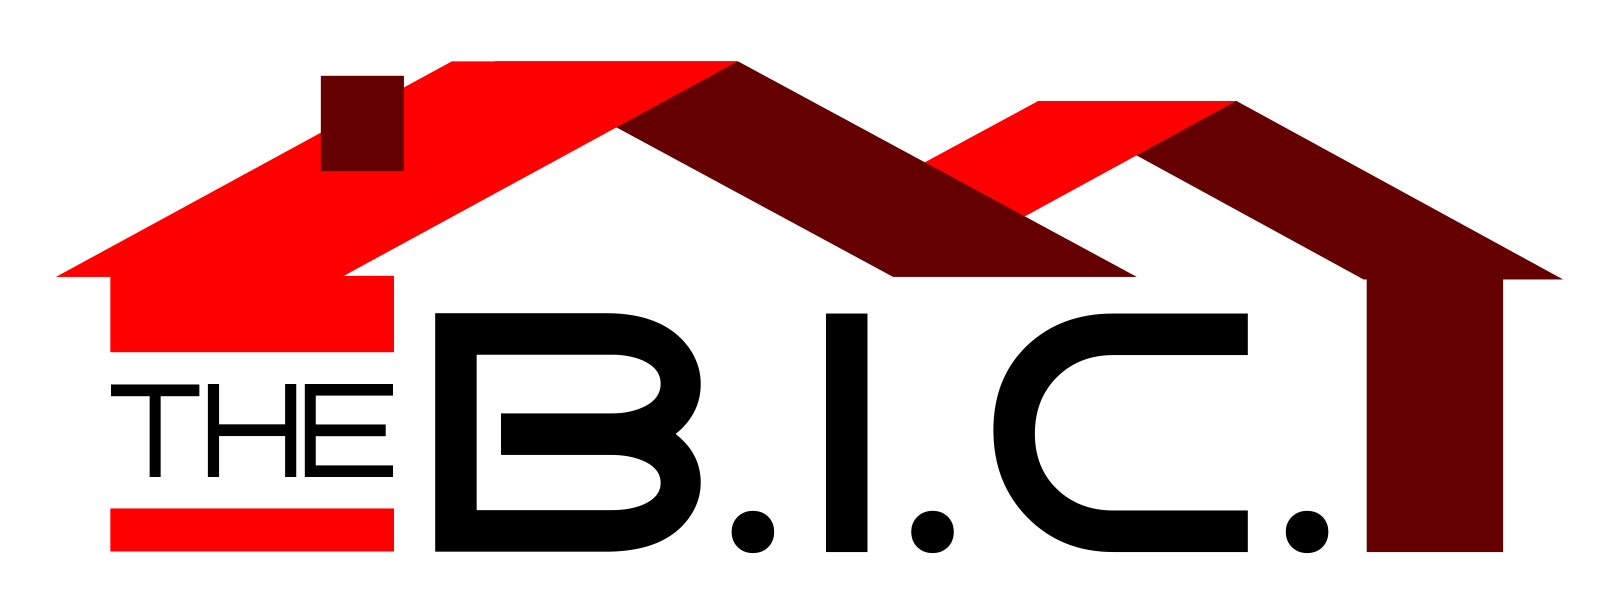 The Building Inspection Company